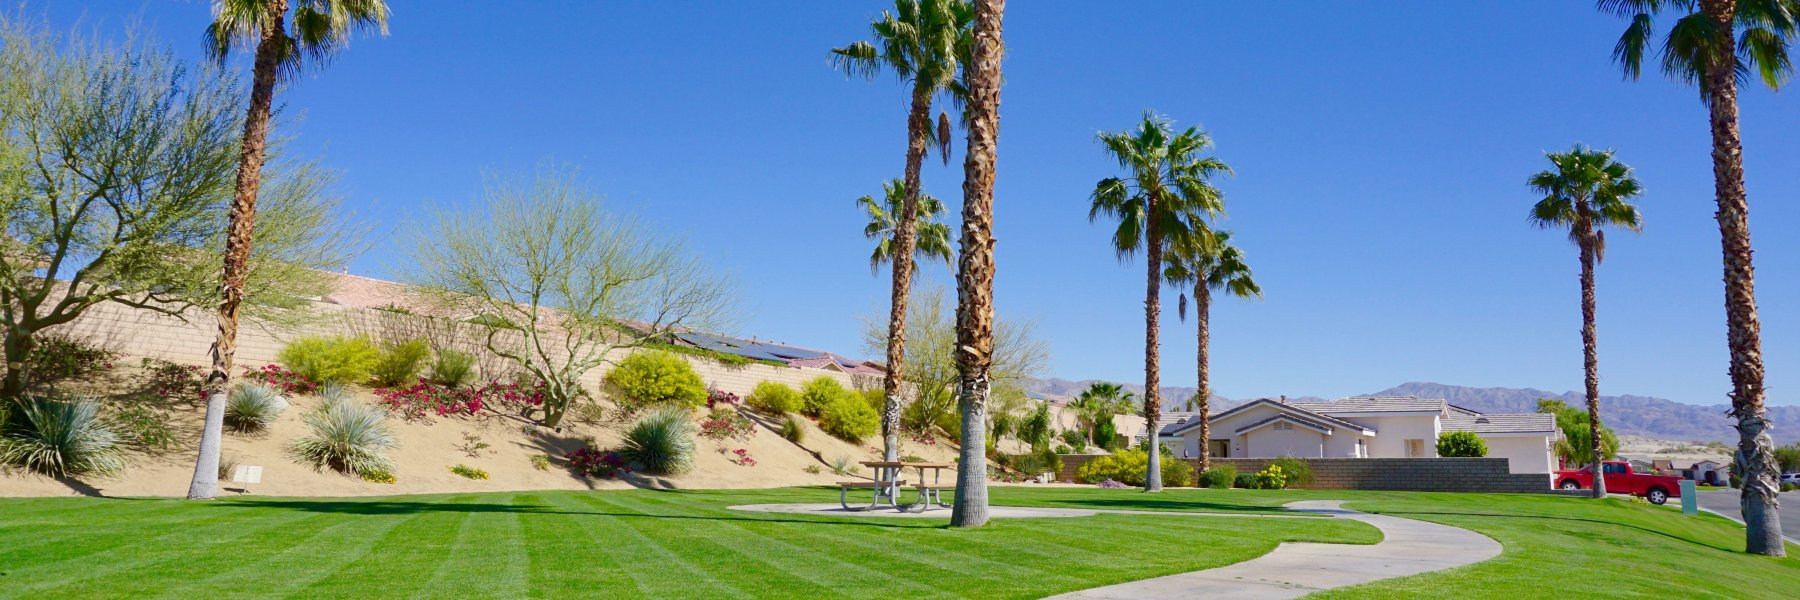 Sandhurst Cove is a community of homes in Indio California